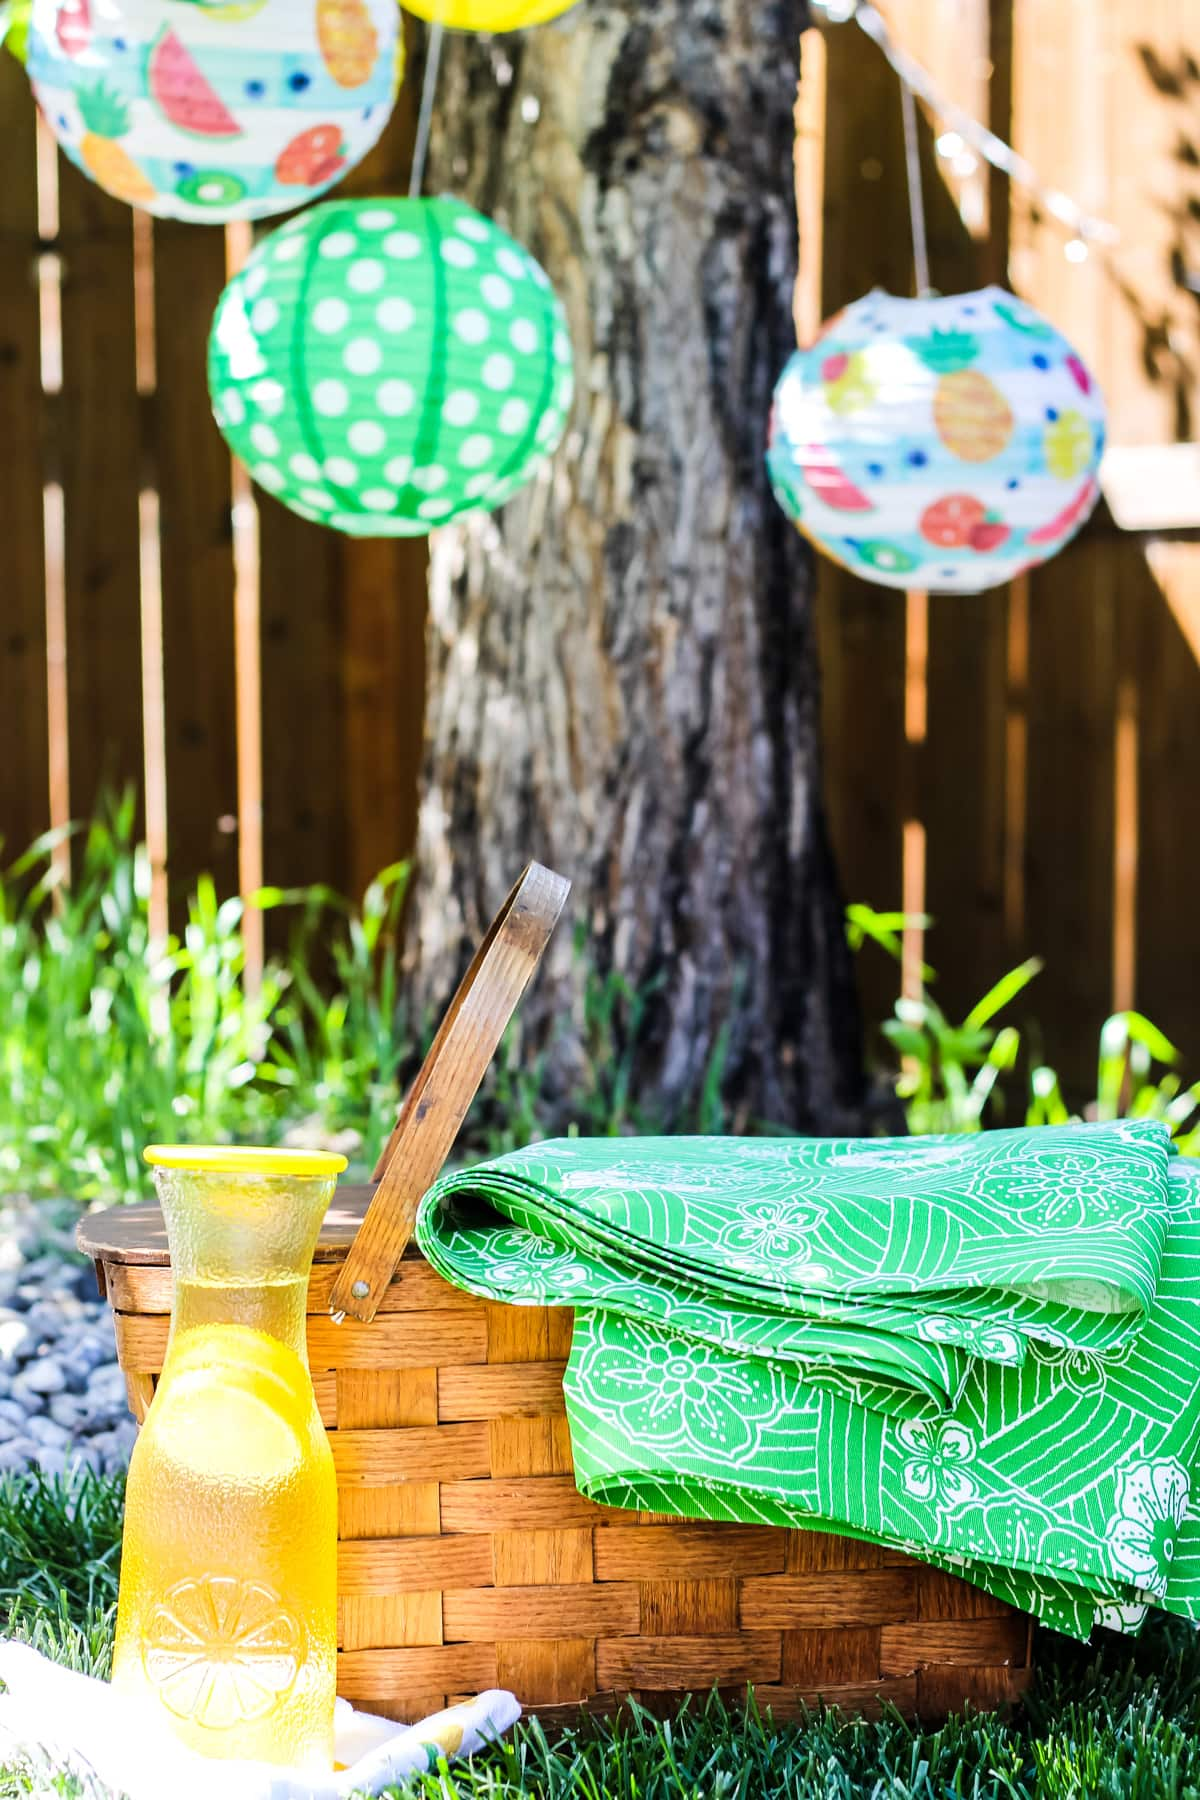 a brown wood picnic basket sitting on green grass. a green and white picnic blanket is draped over one side of it. in front is a jug of lemonade. in the background are paper lanterns hanging from a tree